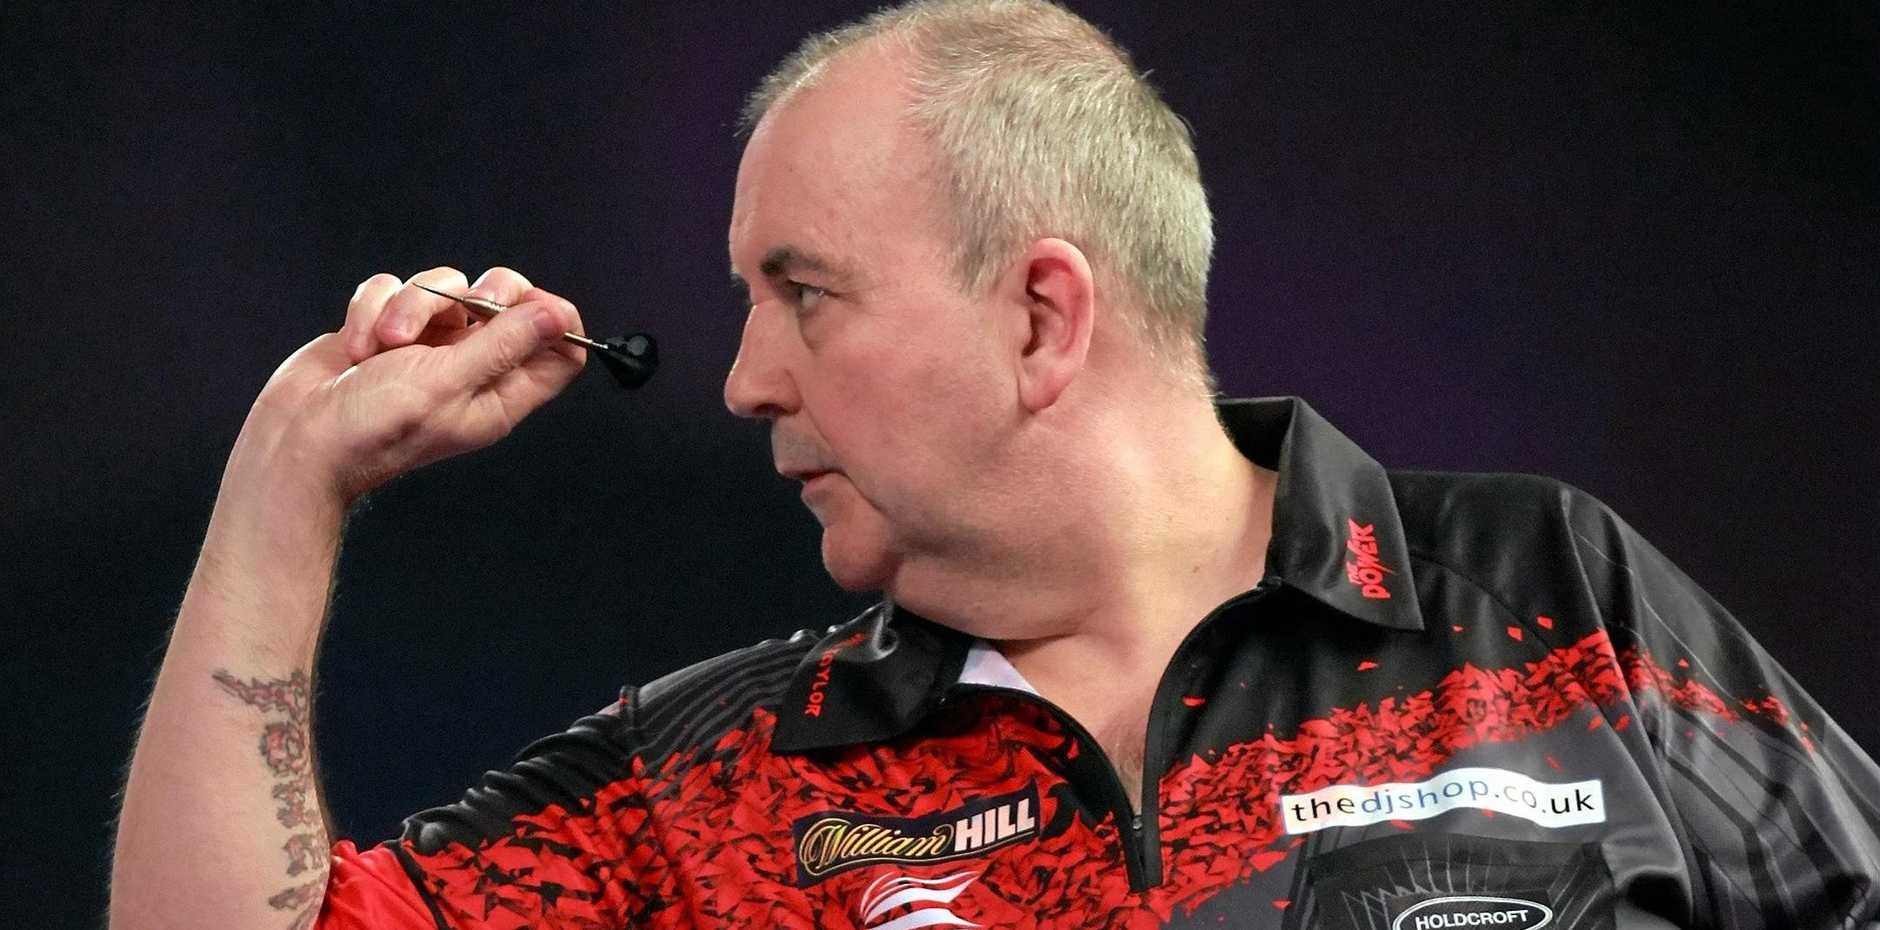 Phil Taylor takes aim at the World Darts Championship in London.